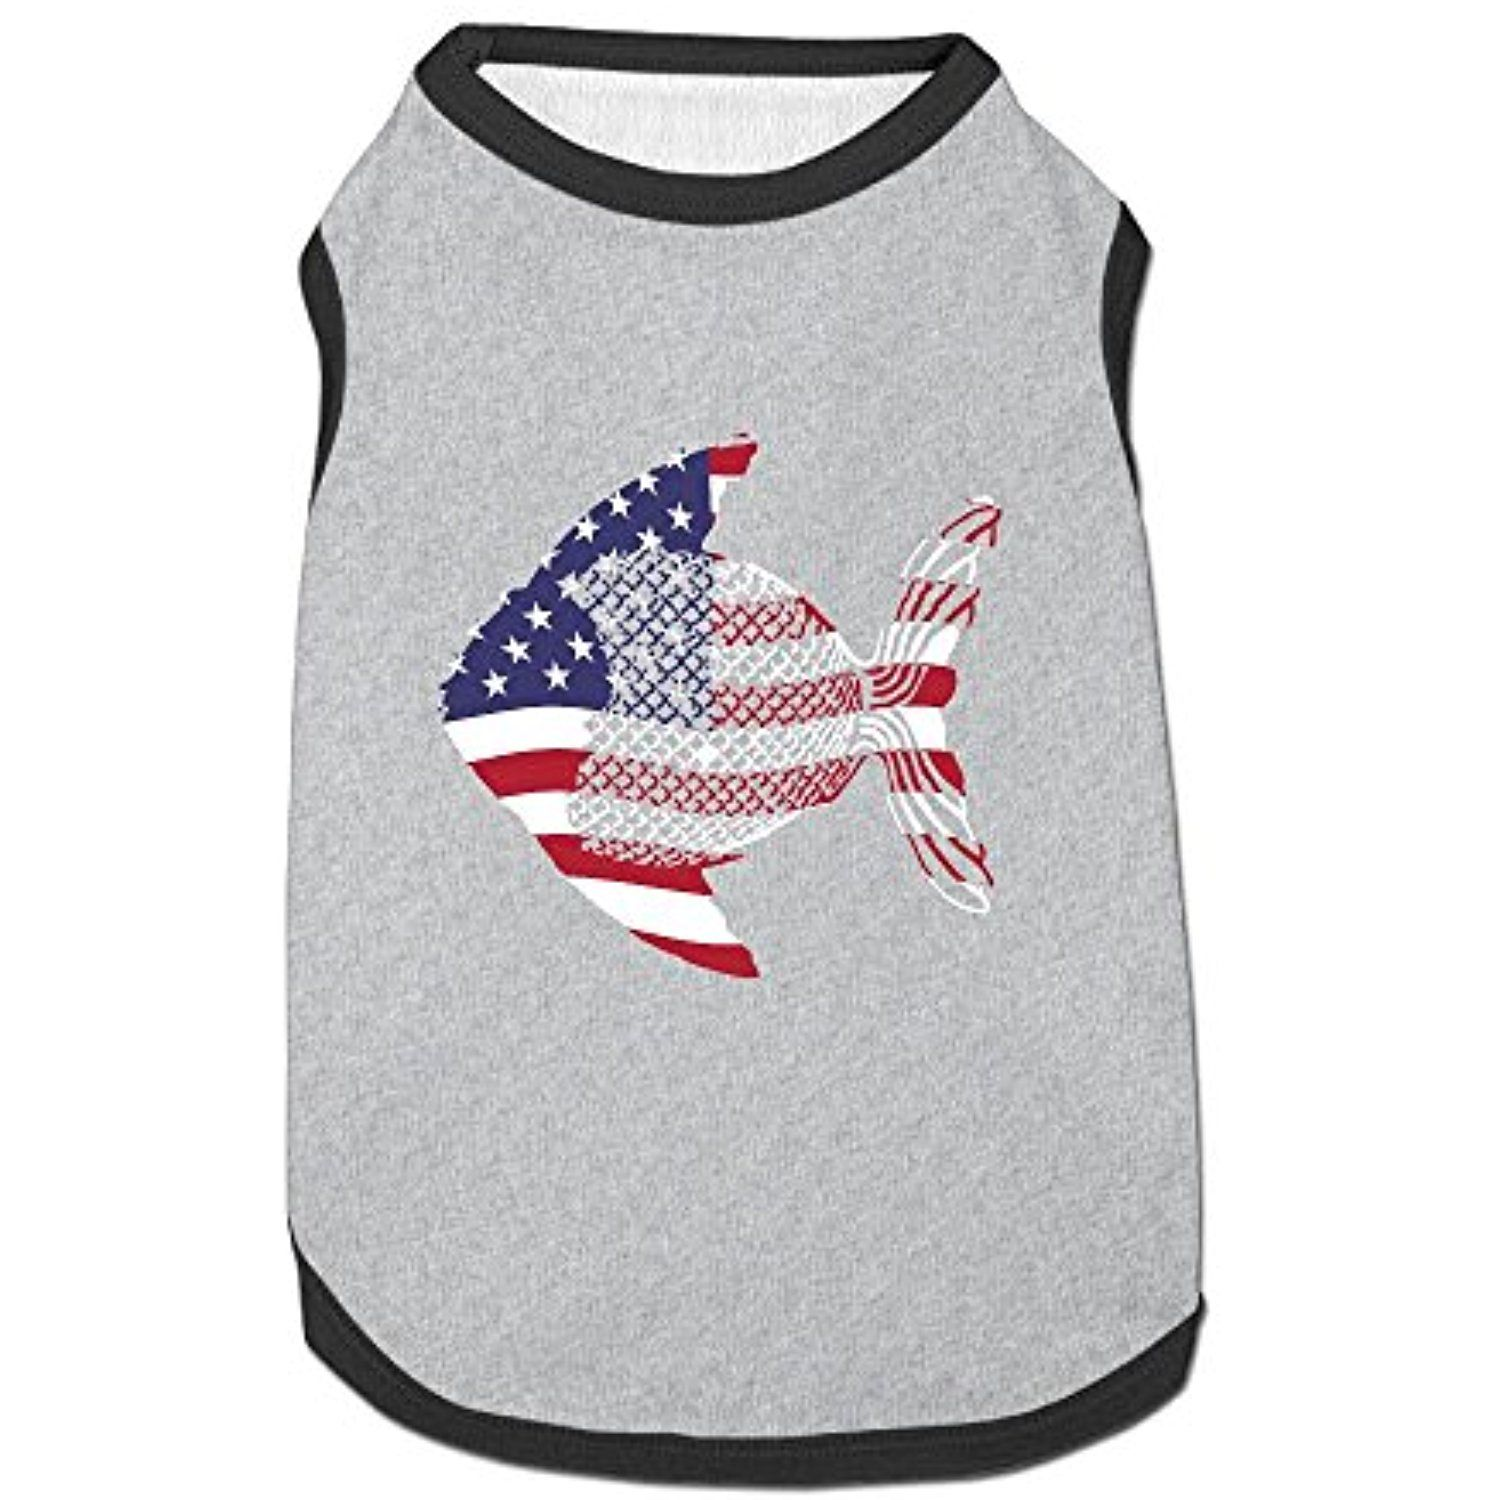 Download Fishing American Flag Puppy Dogs Shirts Costume Pets ...